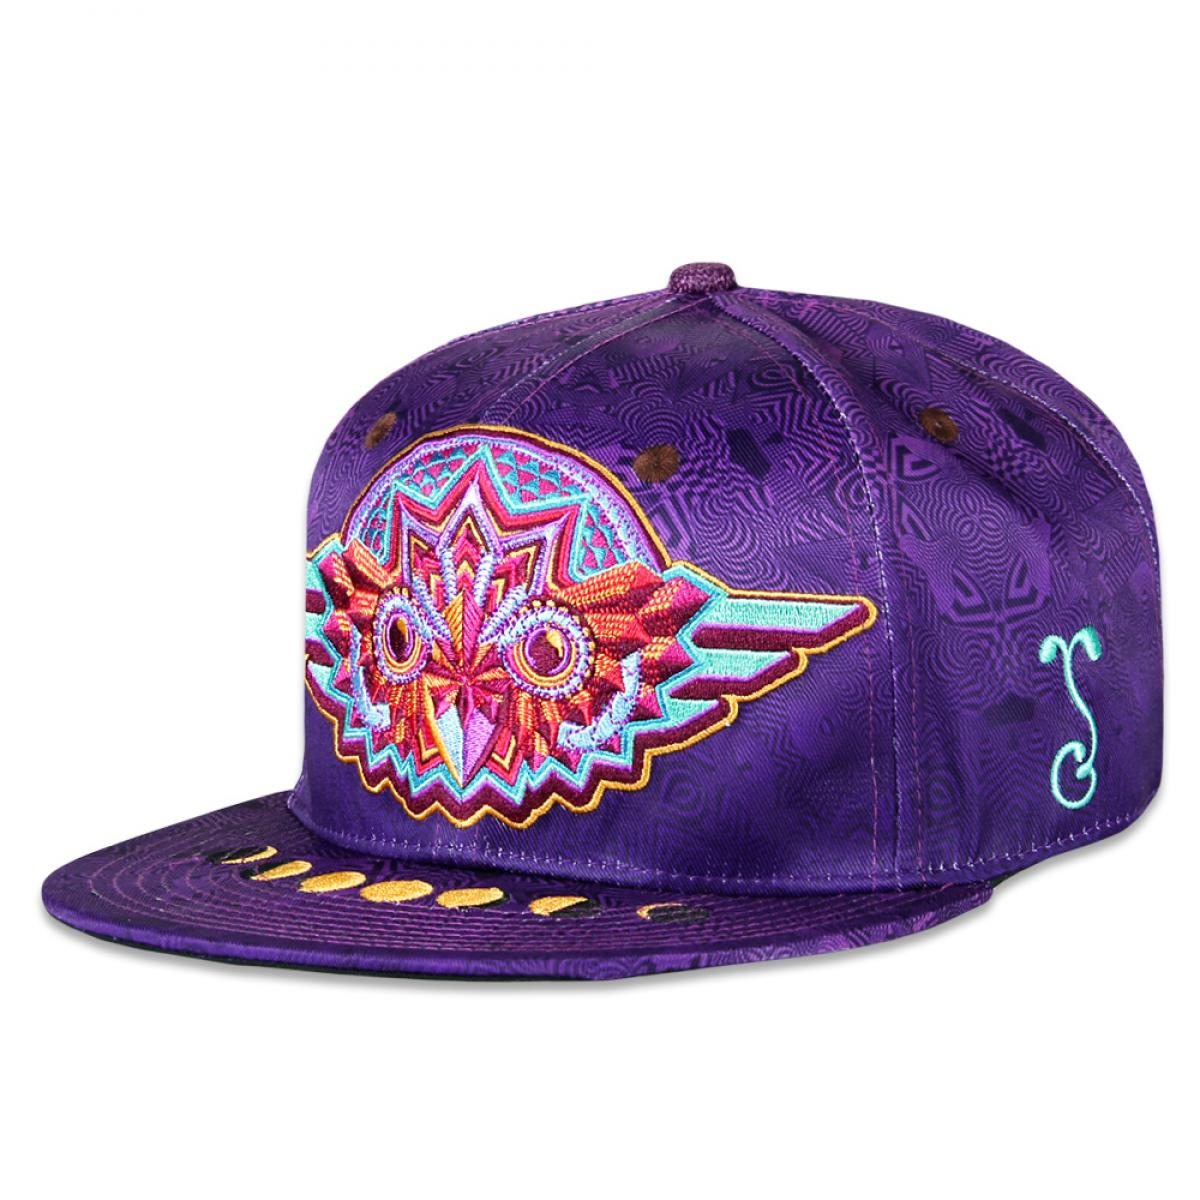 Night Owl Purple Fitted Hat - Grassroots